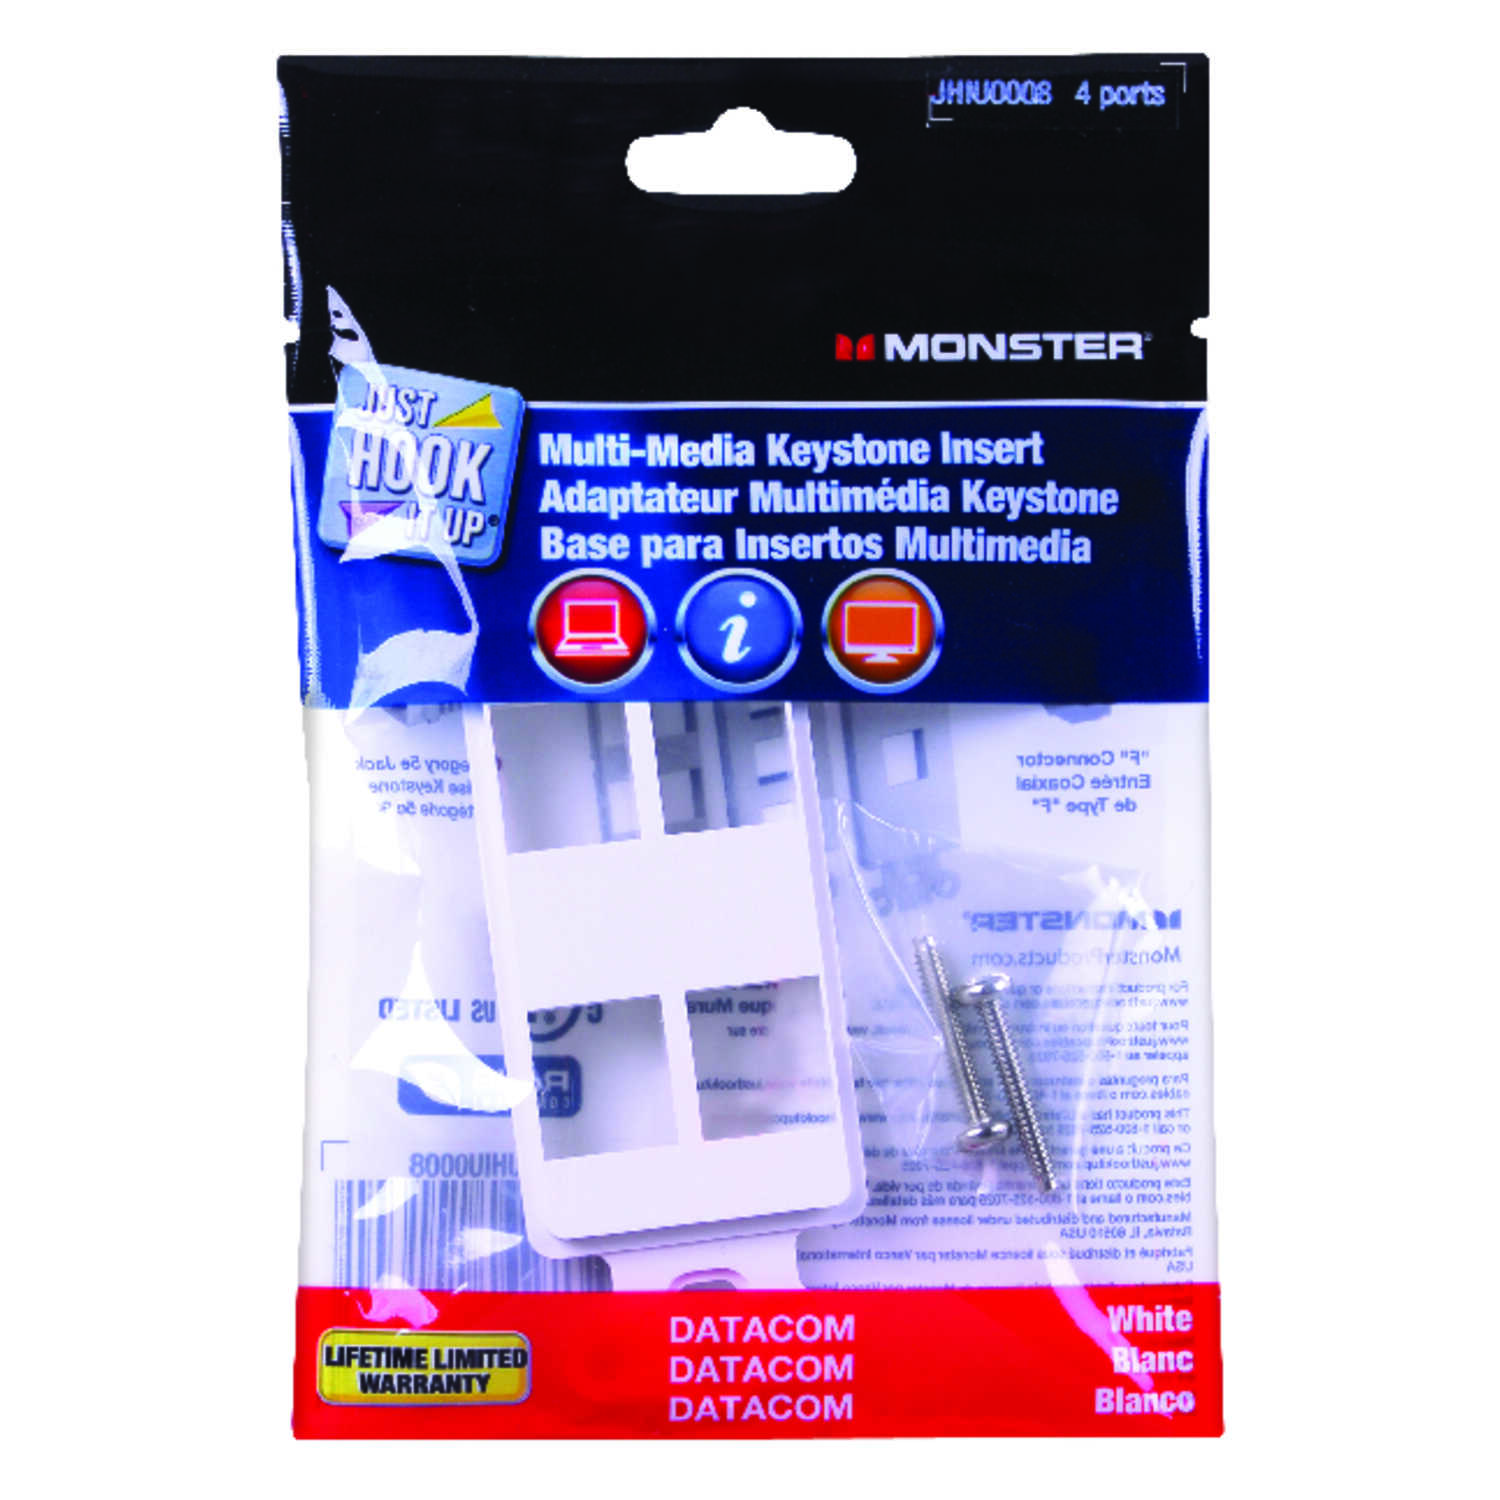 Monster Cable  Just Hook It Up  White  1 gang Plastic  Wall Plate  1 pk Keystone